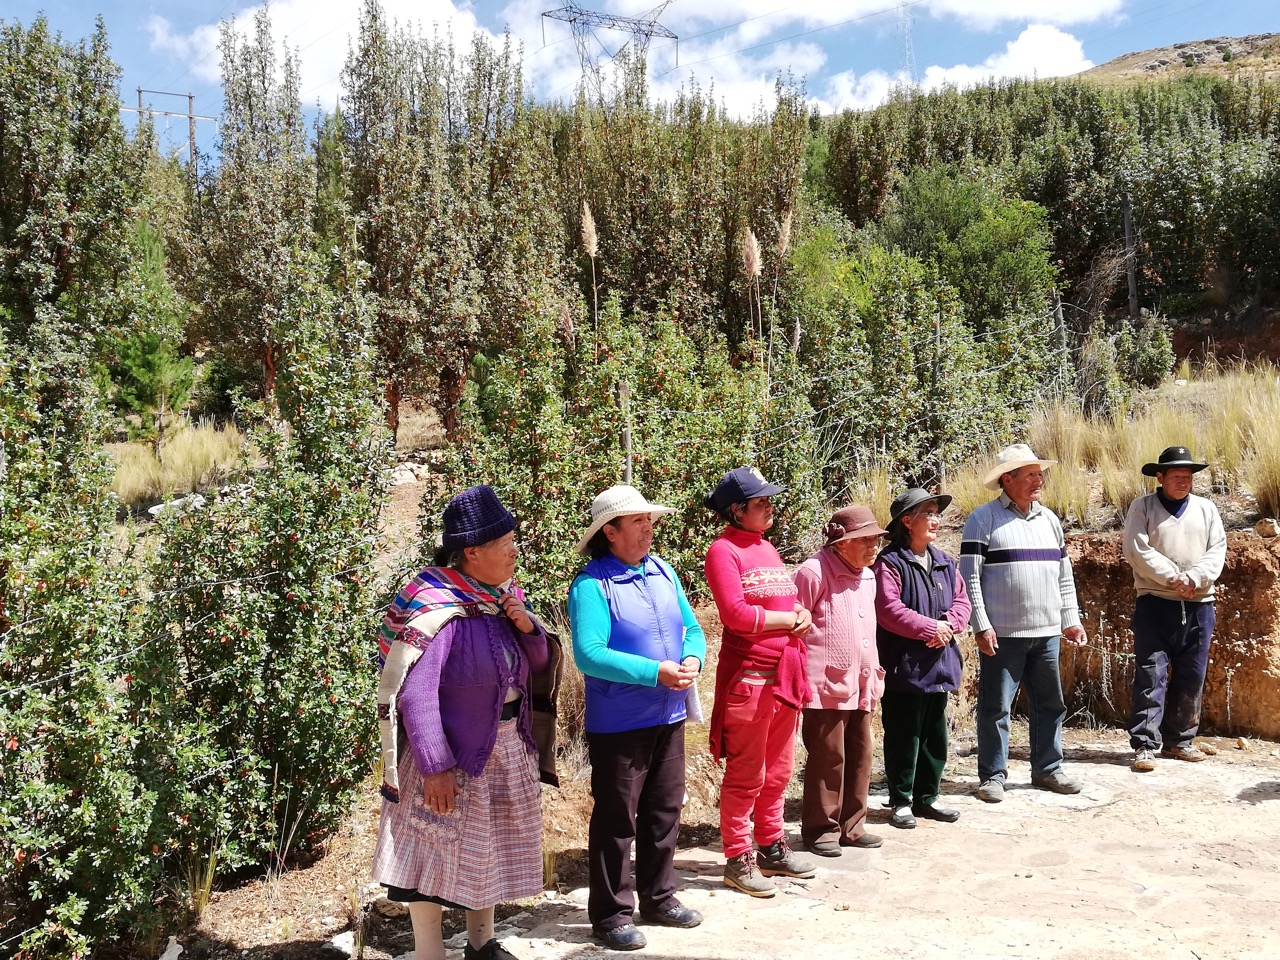 The Committee of the Villa del Sol Reforestation Project, with the successful project results in the background. La Oroya, Peru